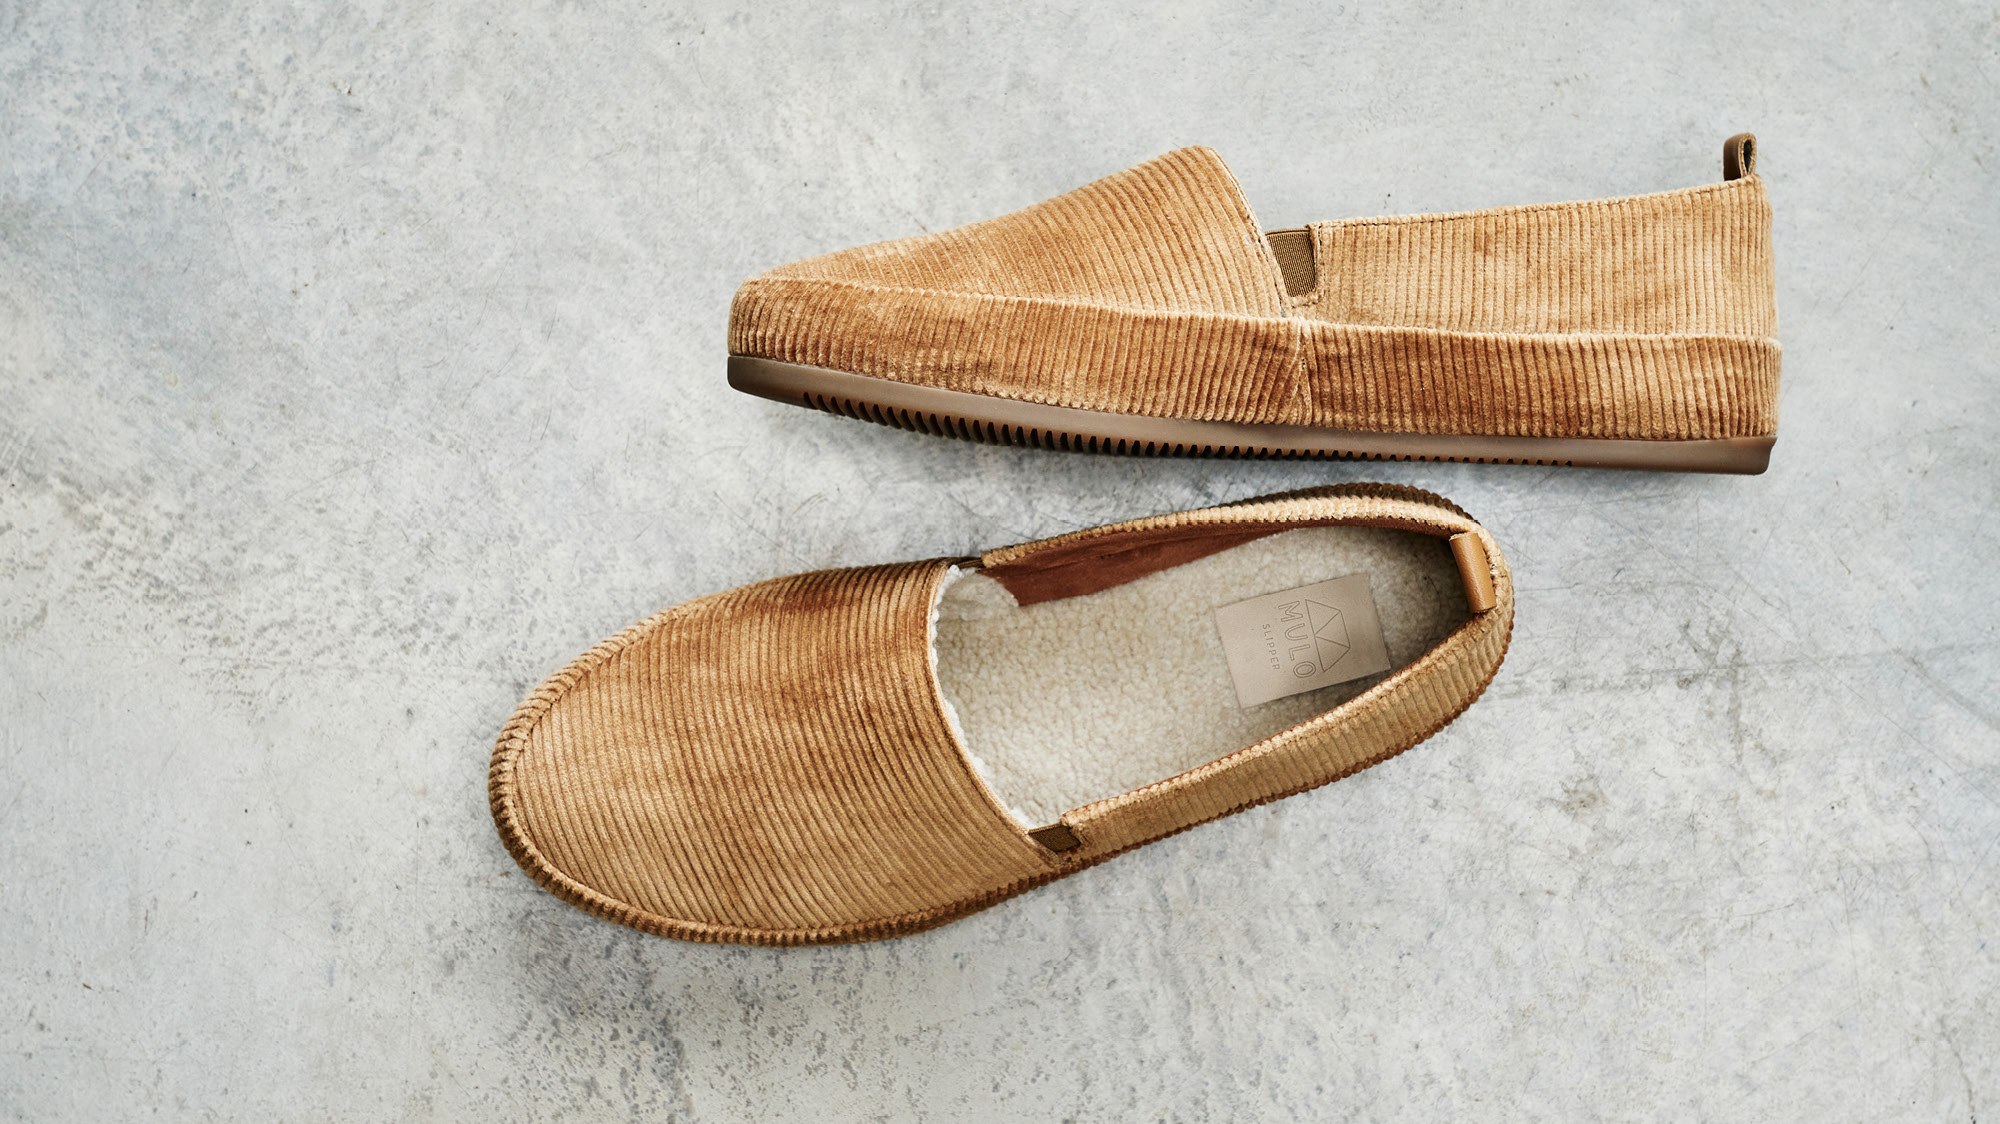 Designer Mens Slippers - House Shoes lined with natural shearling